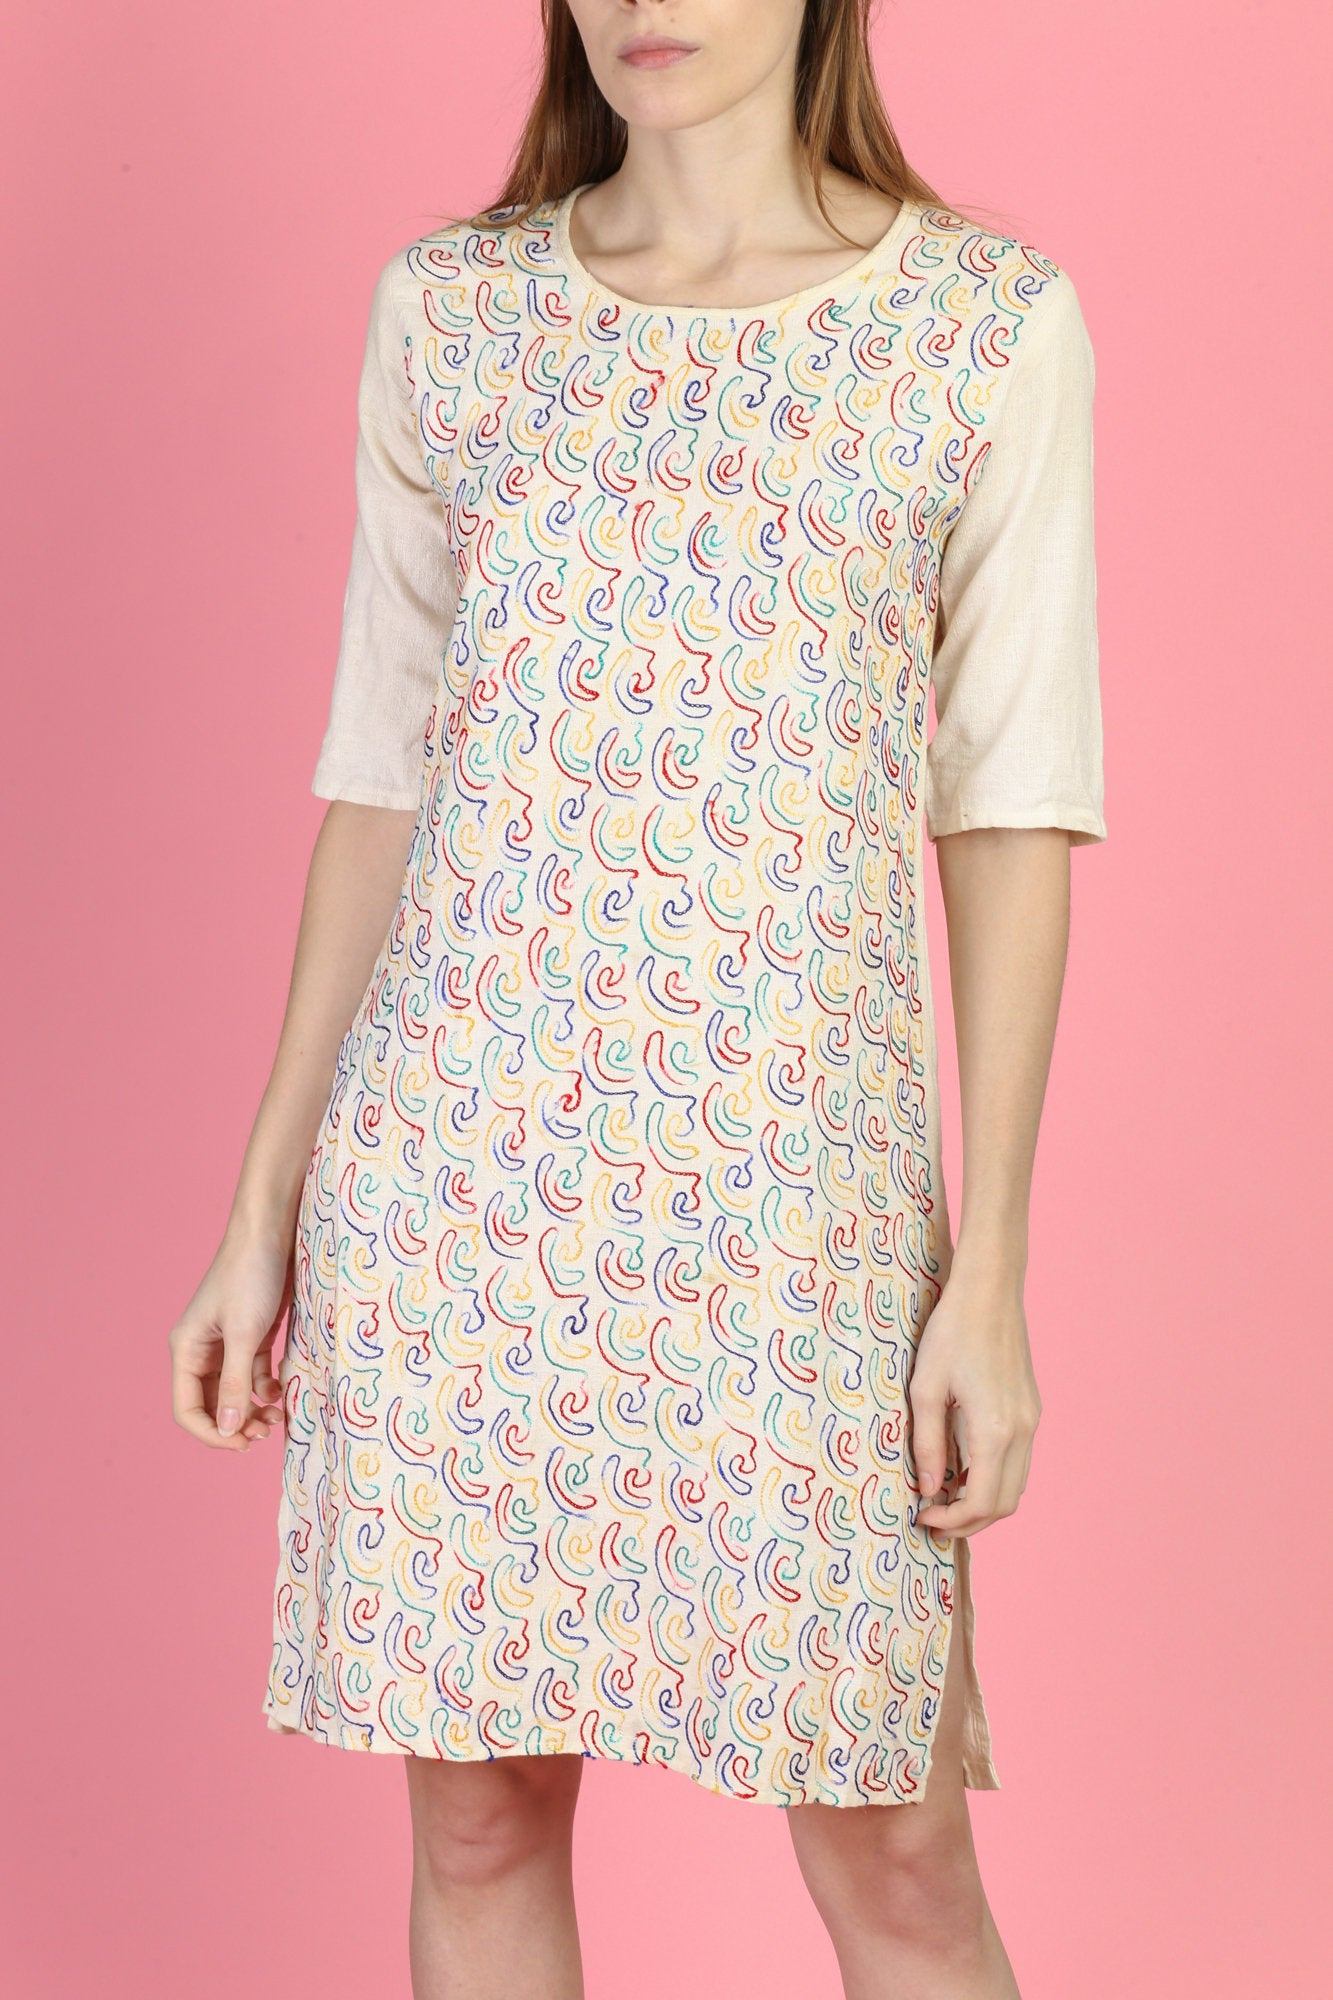 Vintage Indian Embroidered Kurti Dress - Extra Small